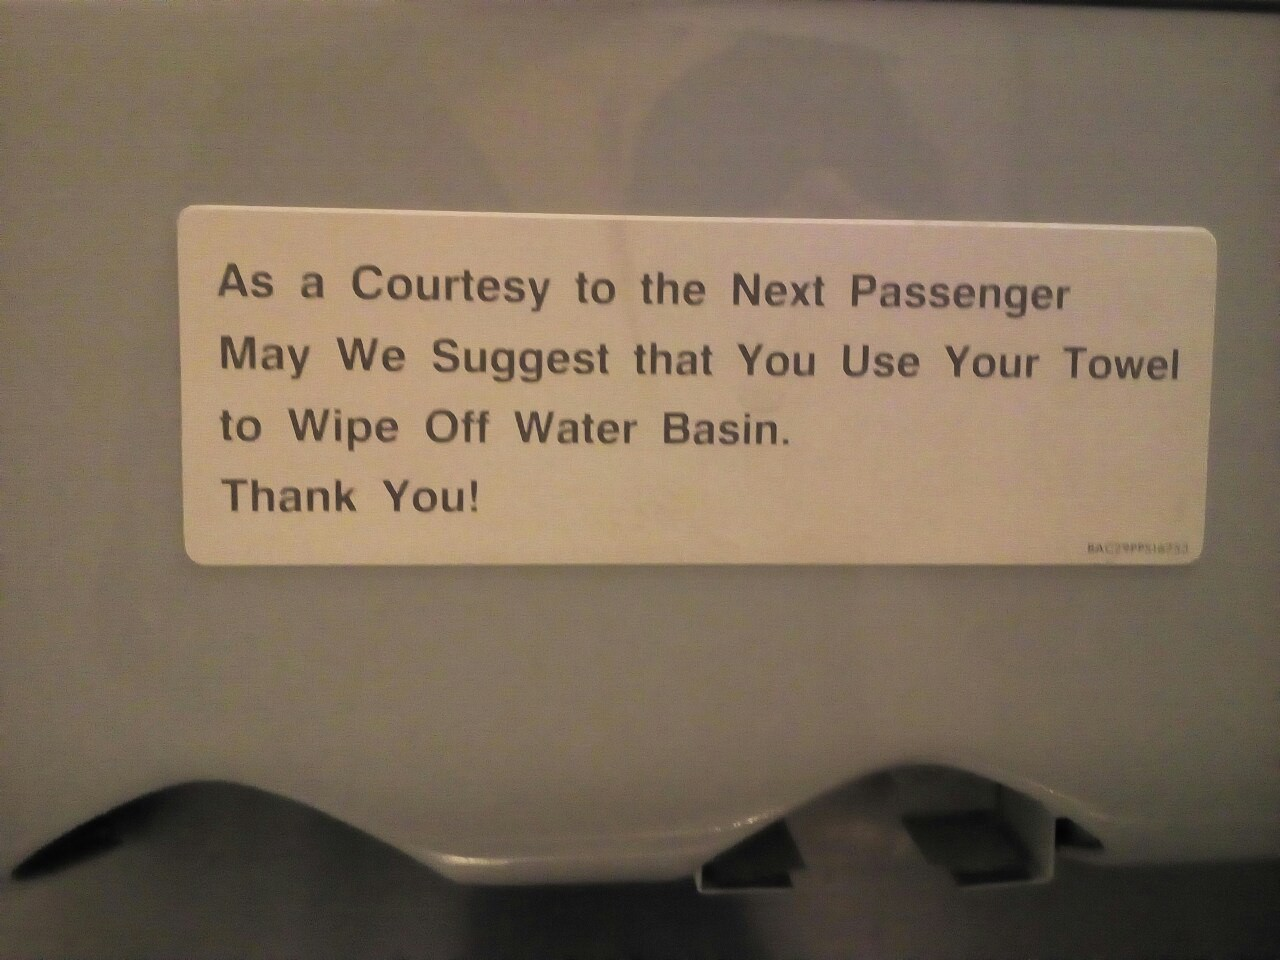 As a Courtesy to the Next Passenger May We Suggest that You Use Your Towel to Wipe Off the Water Basin. Thank You!